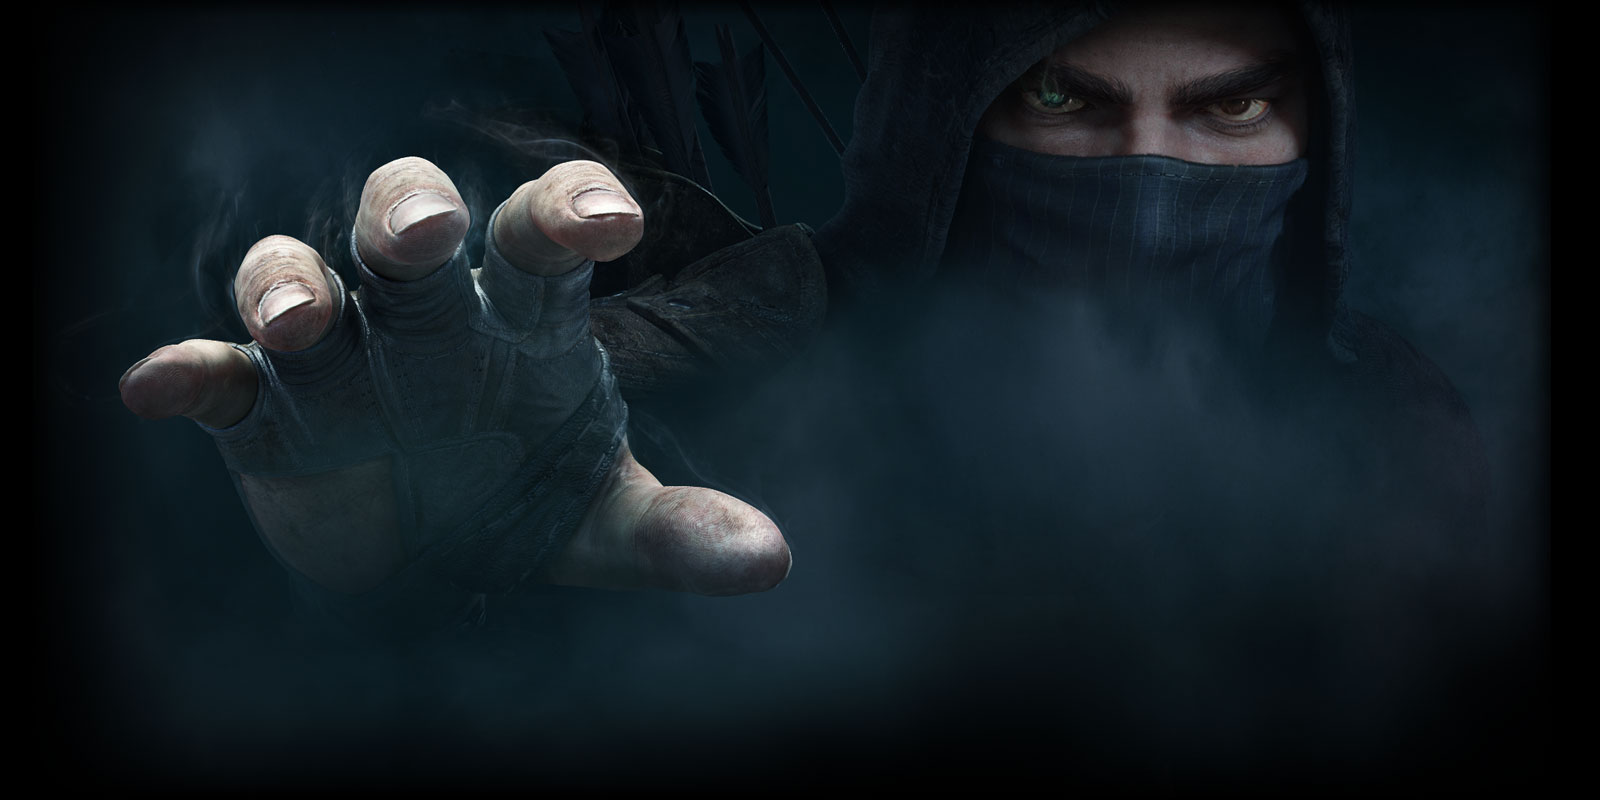 Thief The Game